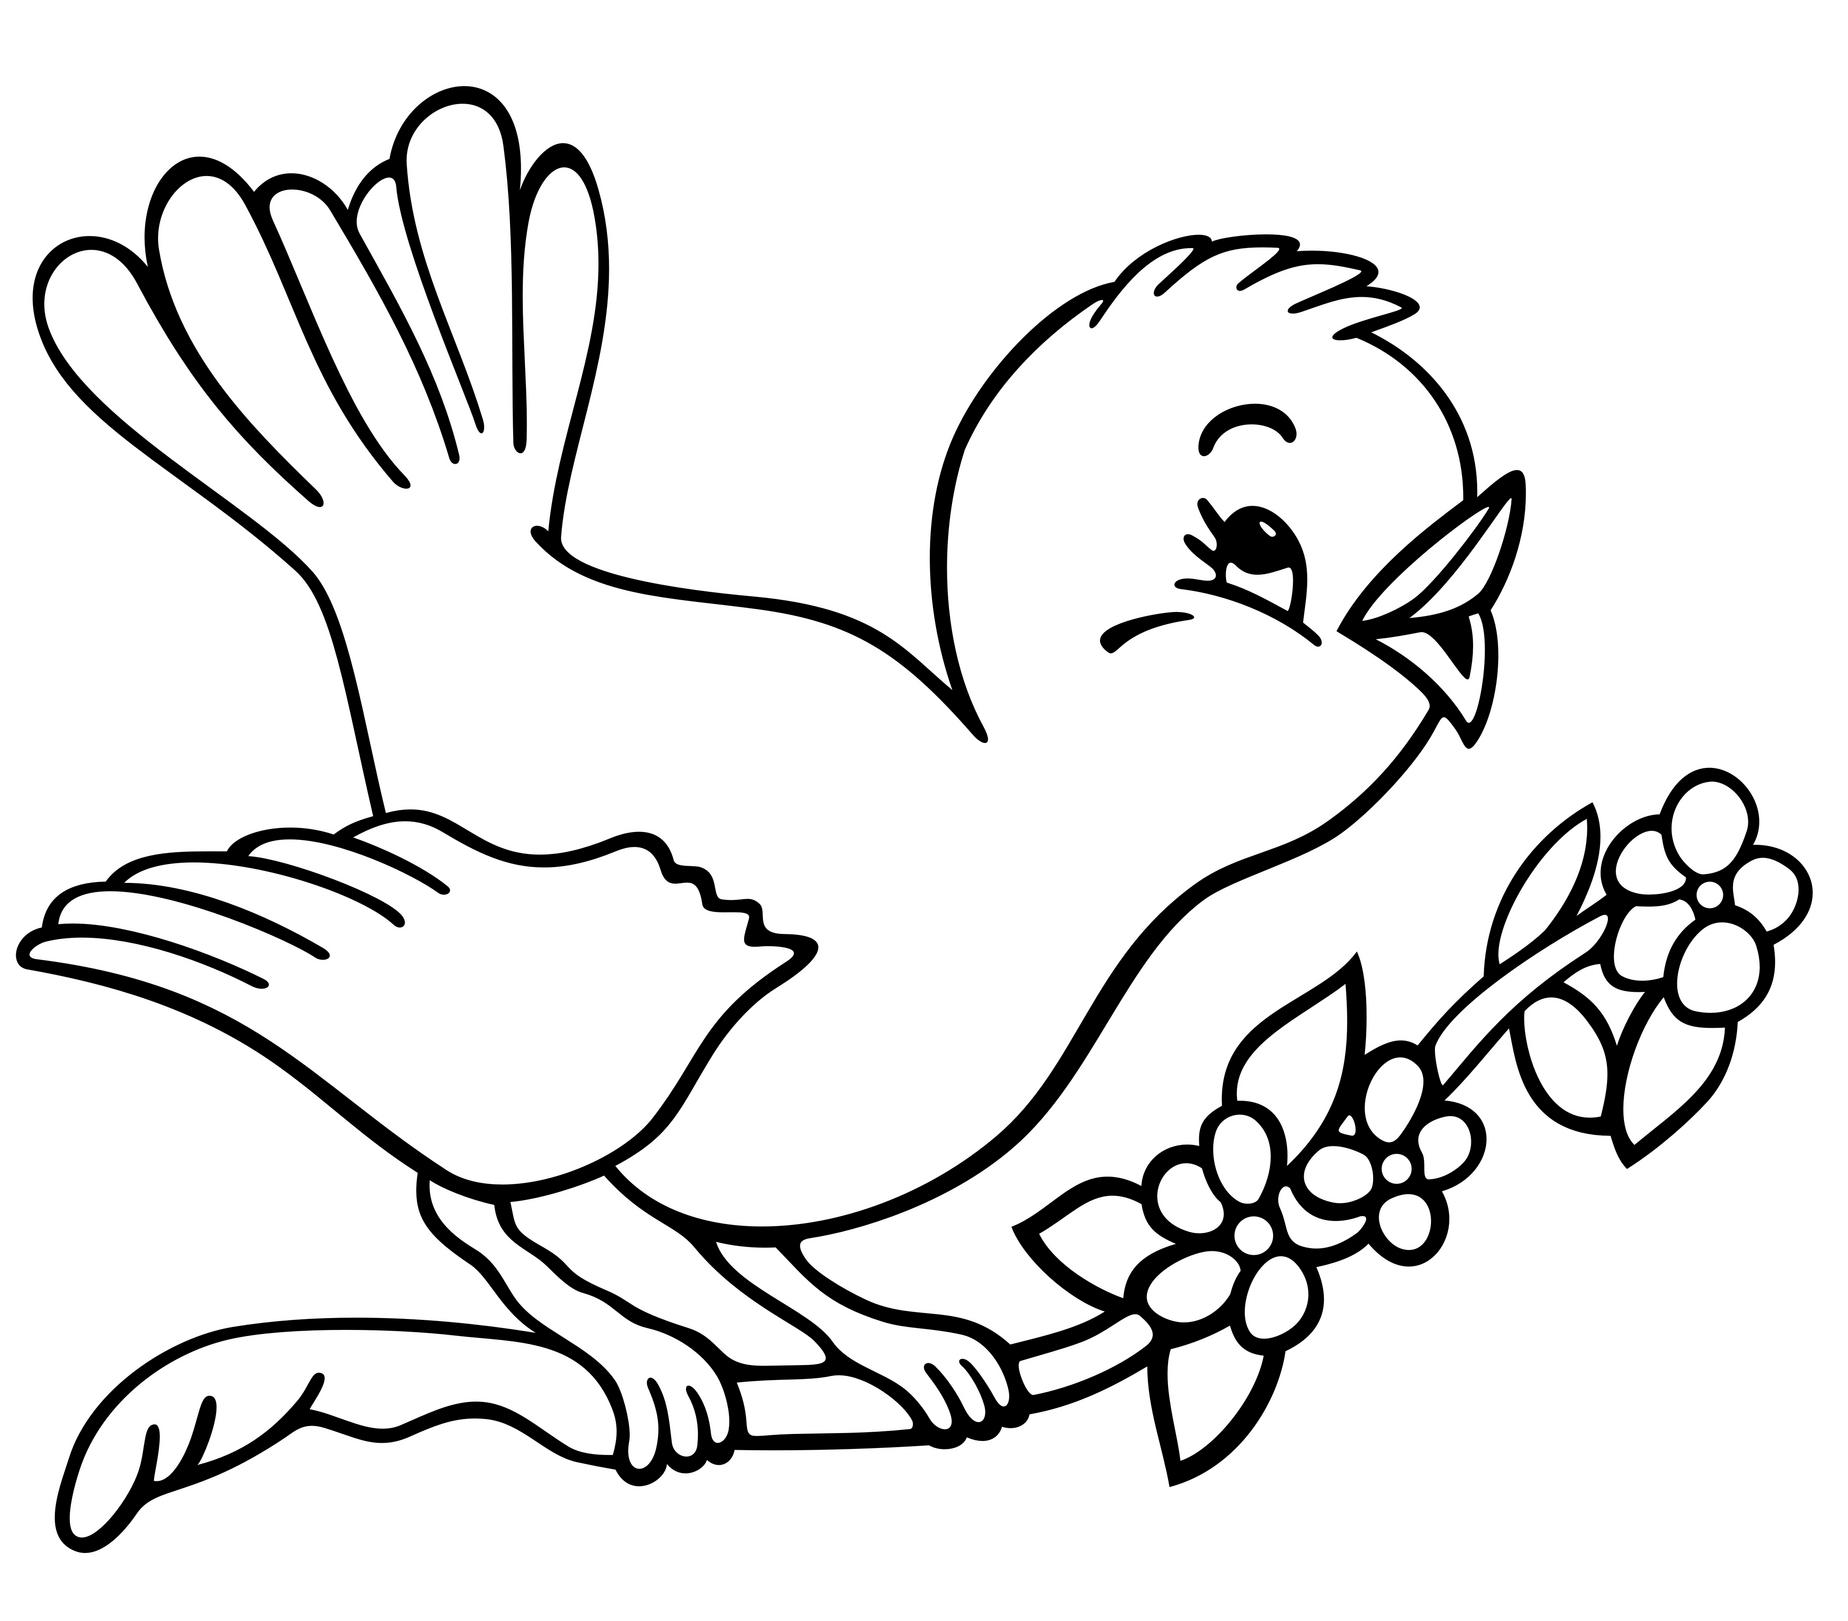 parrot coloring pages bird - photo#6